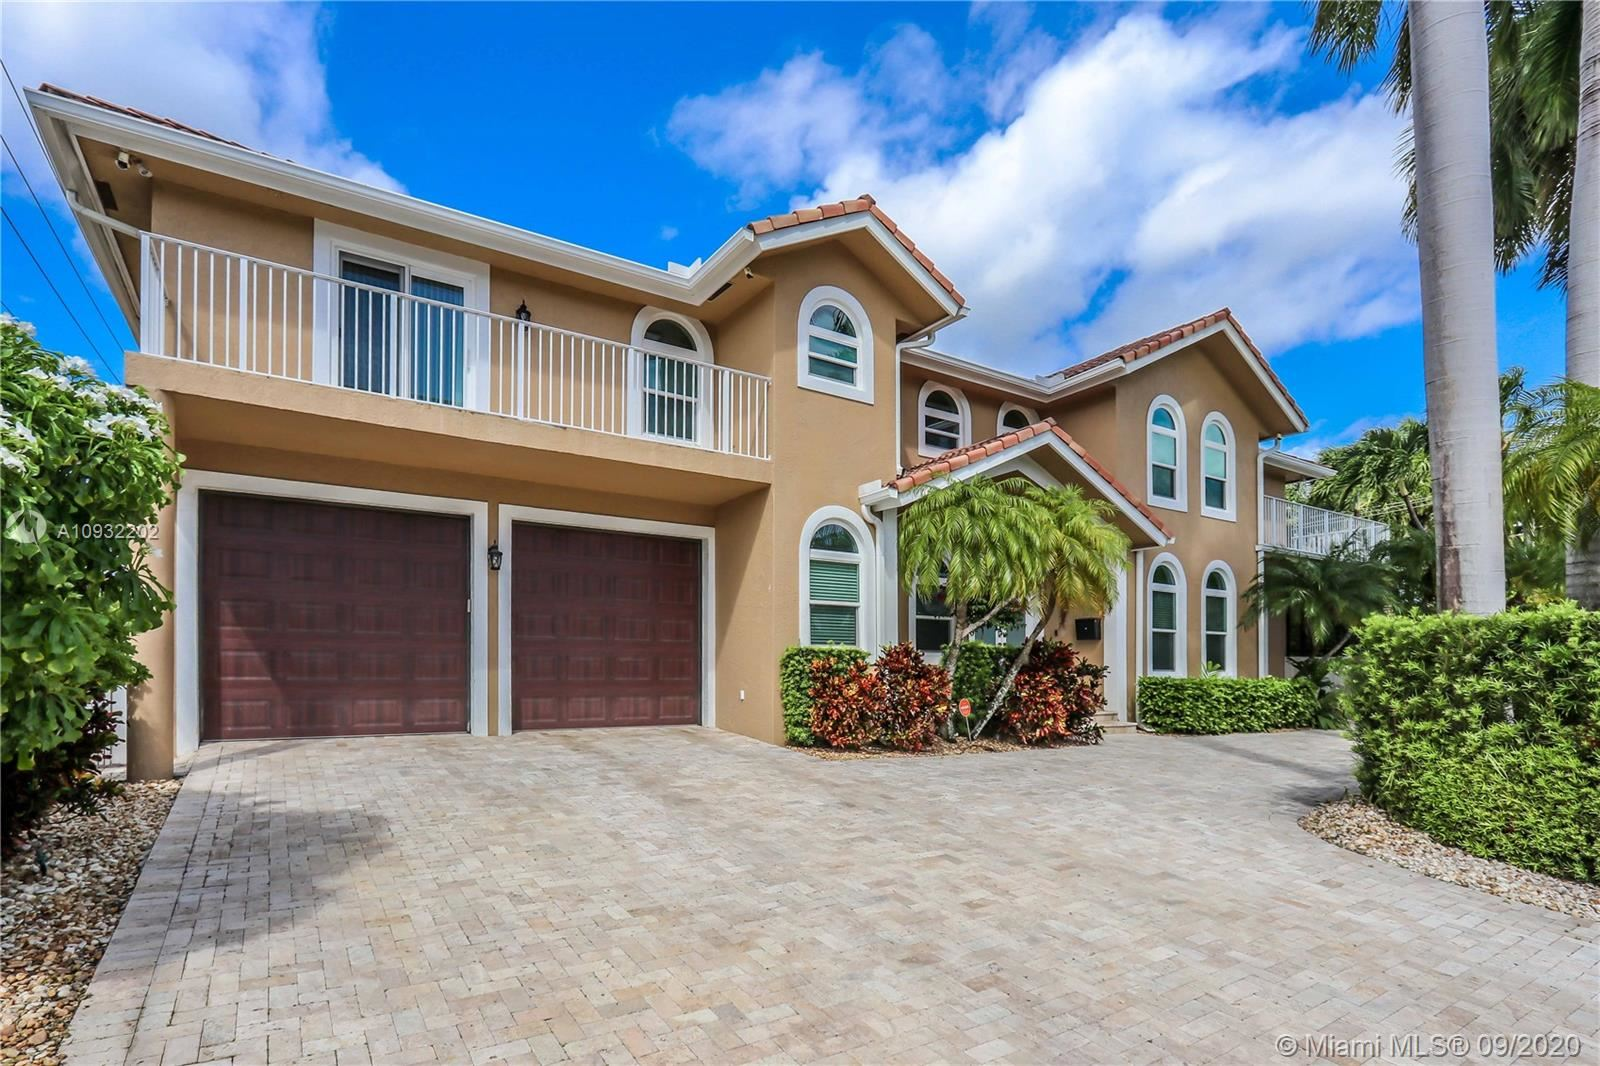 Photo of 850 N 11th Ave, Hollywood, FL 33019 (MLS # A10932202)